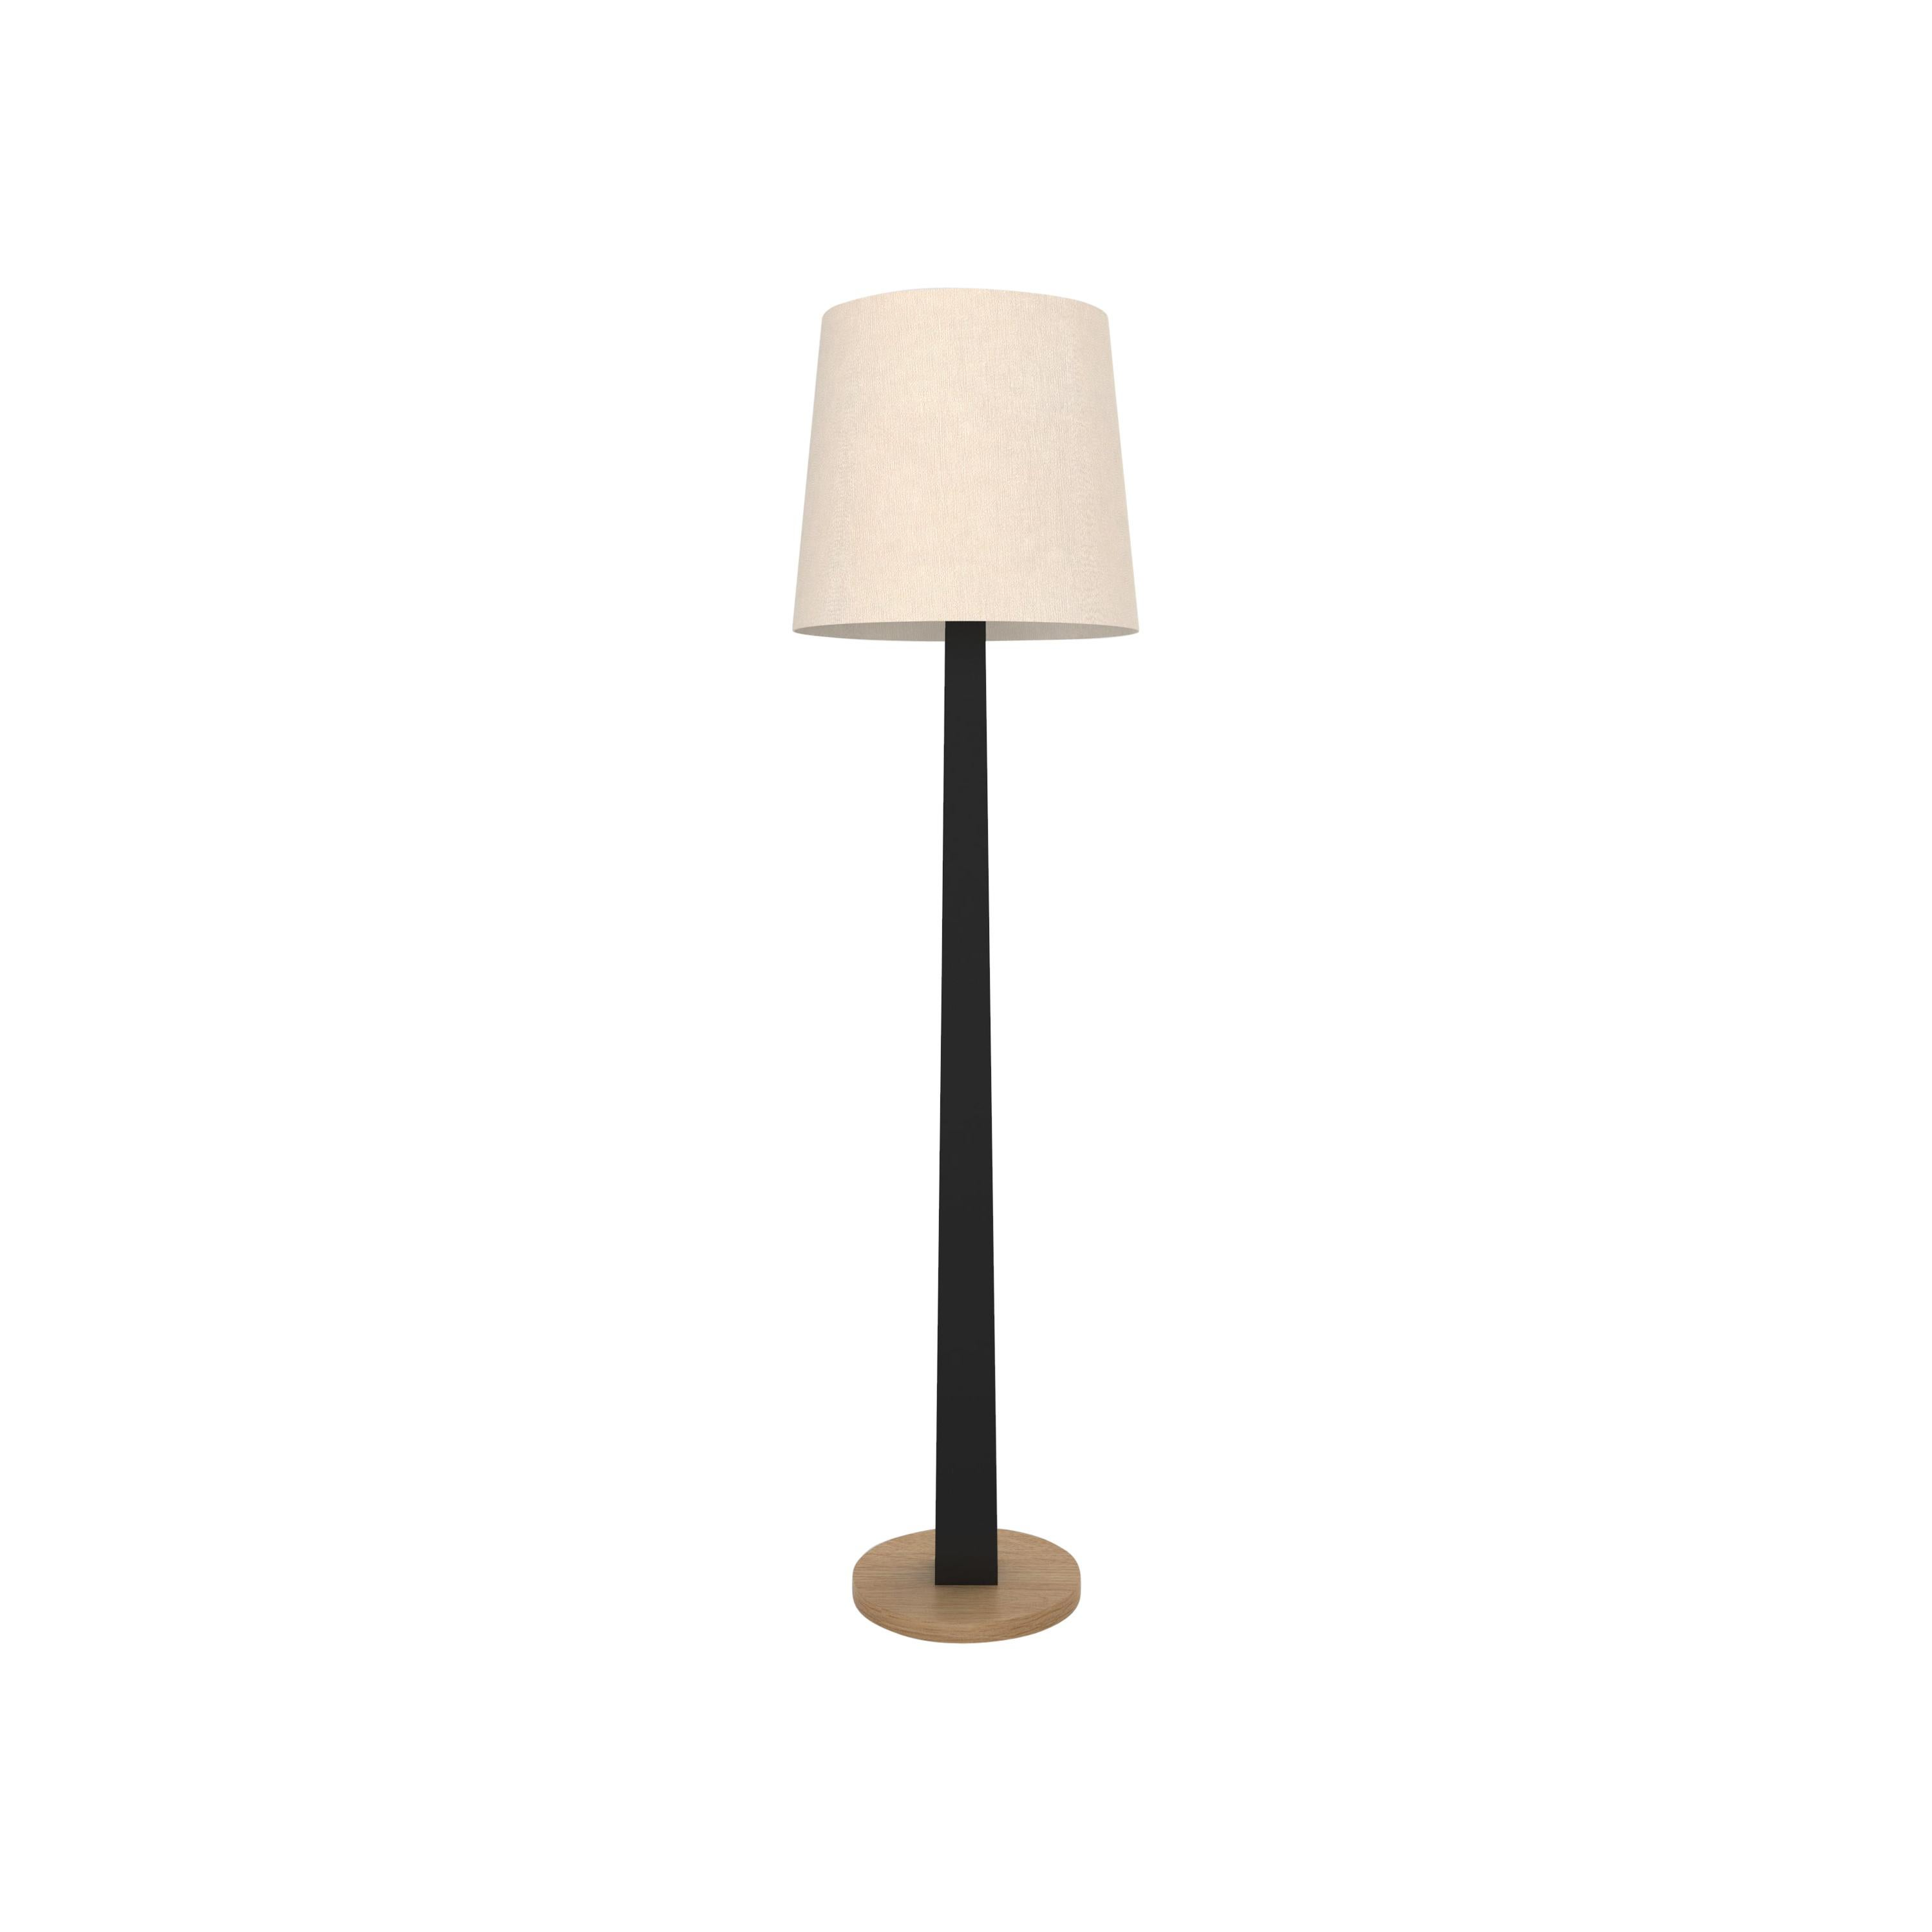 Contemporary 002 Floor Lamp in Oak and Black by Orphan Work